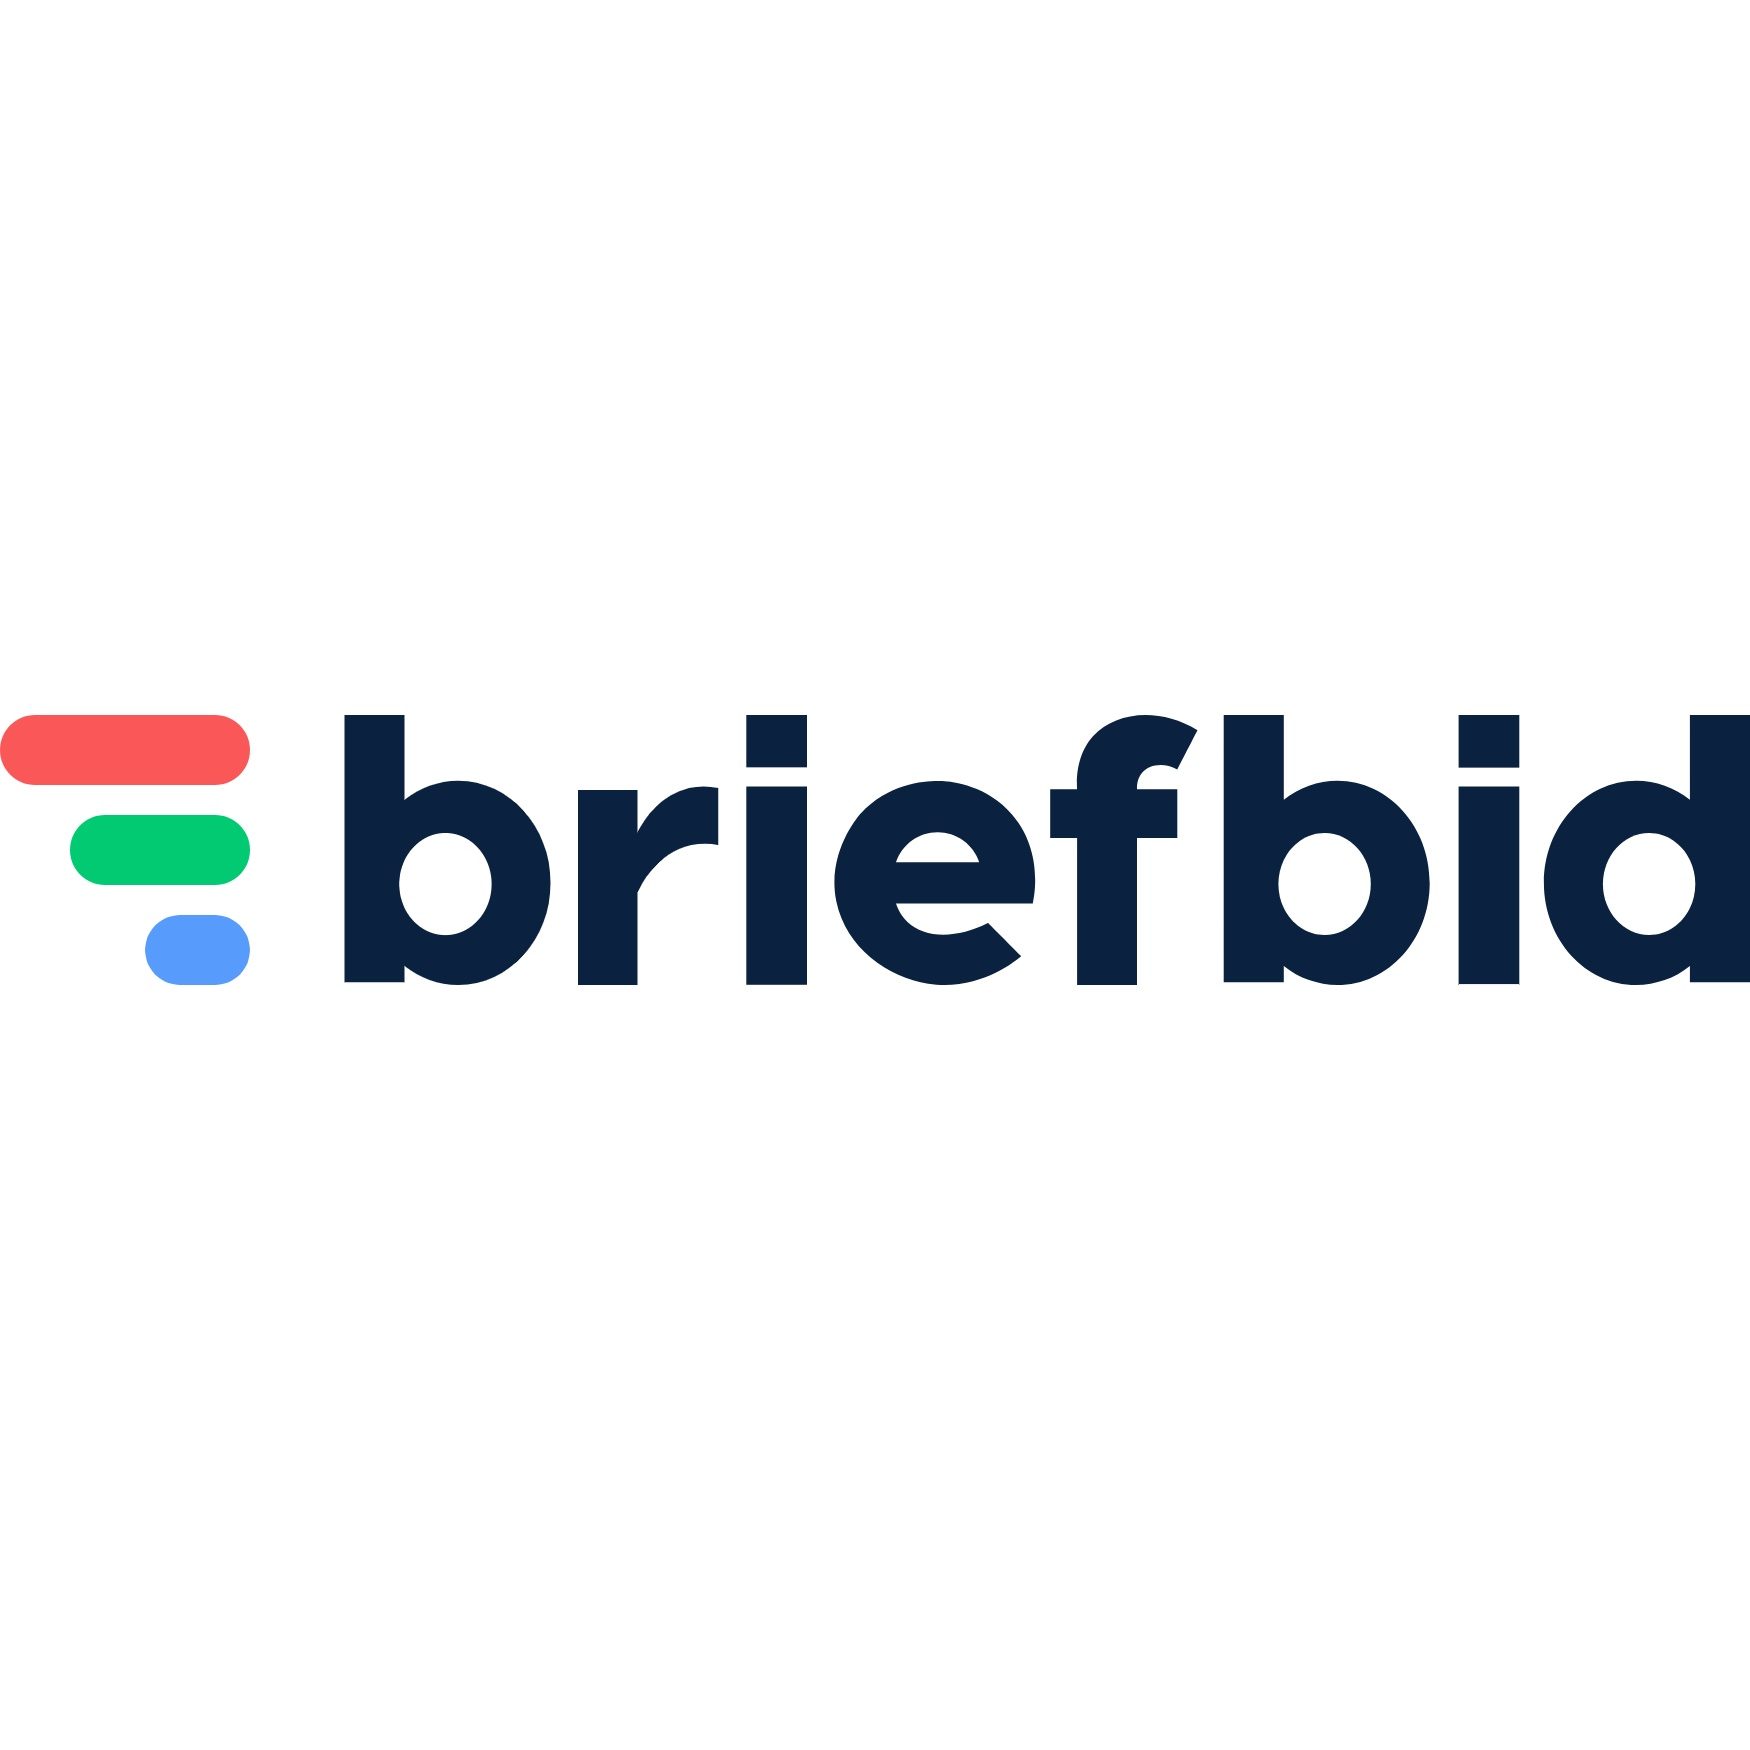 Briefbid is Eliminating the Maze of the Modern Media Industry